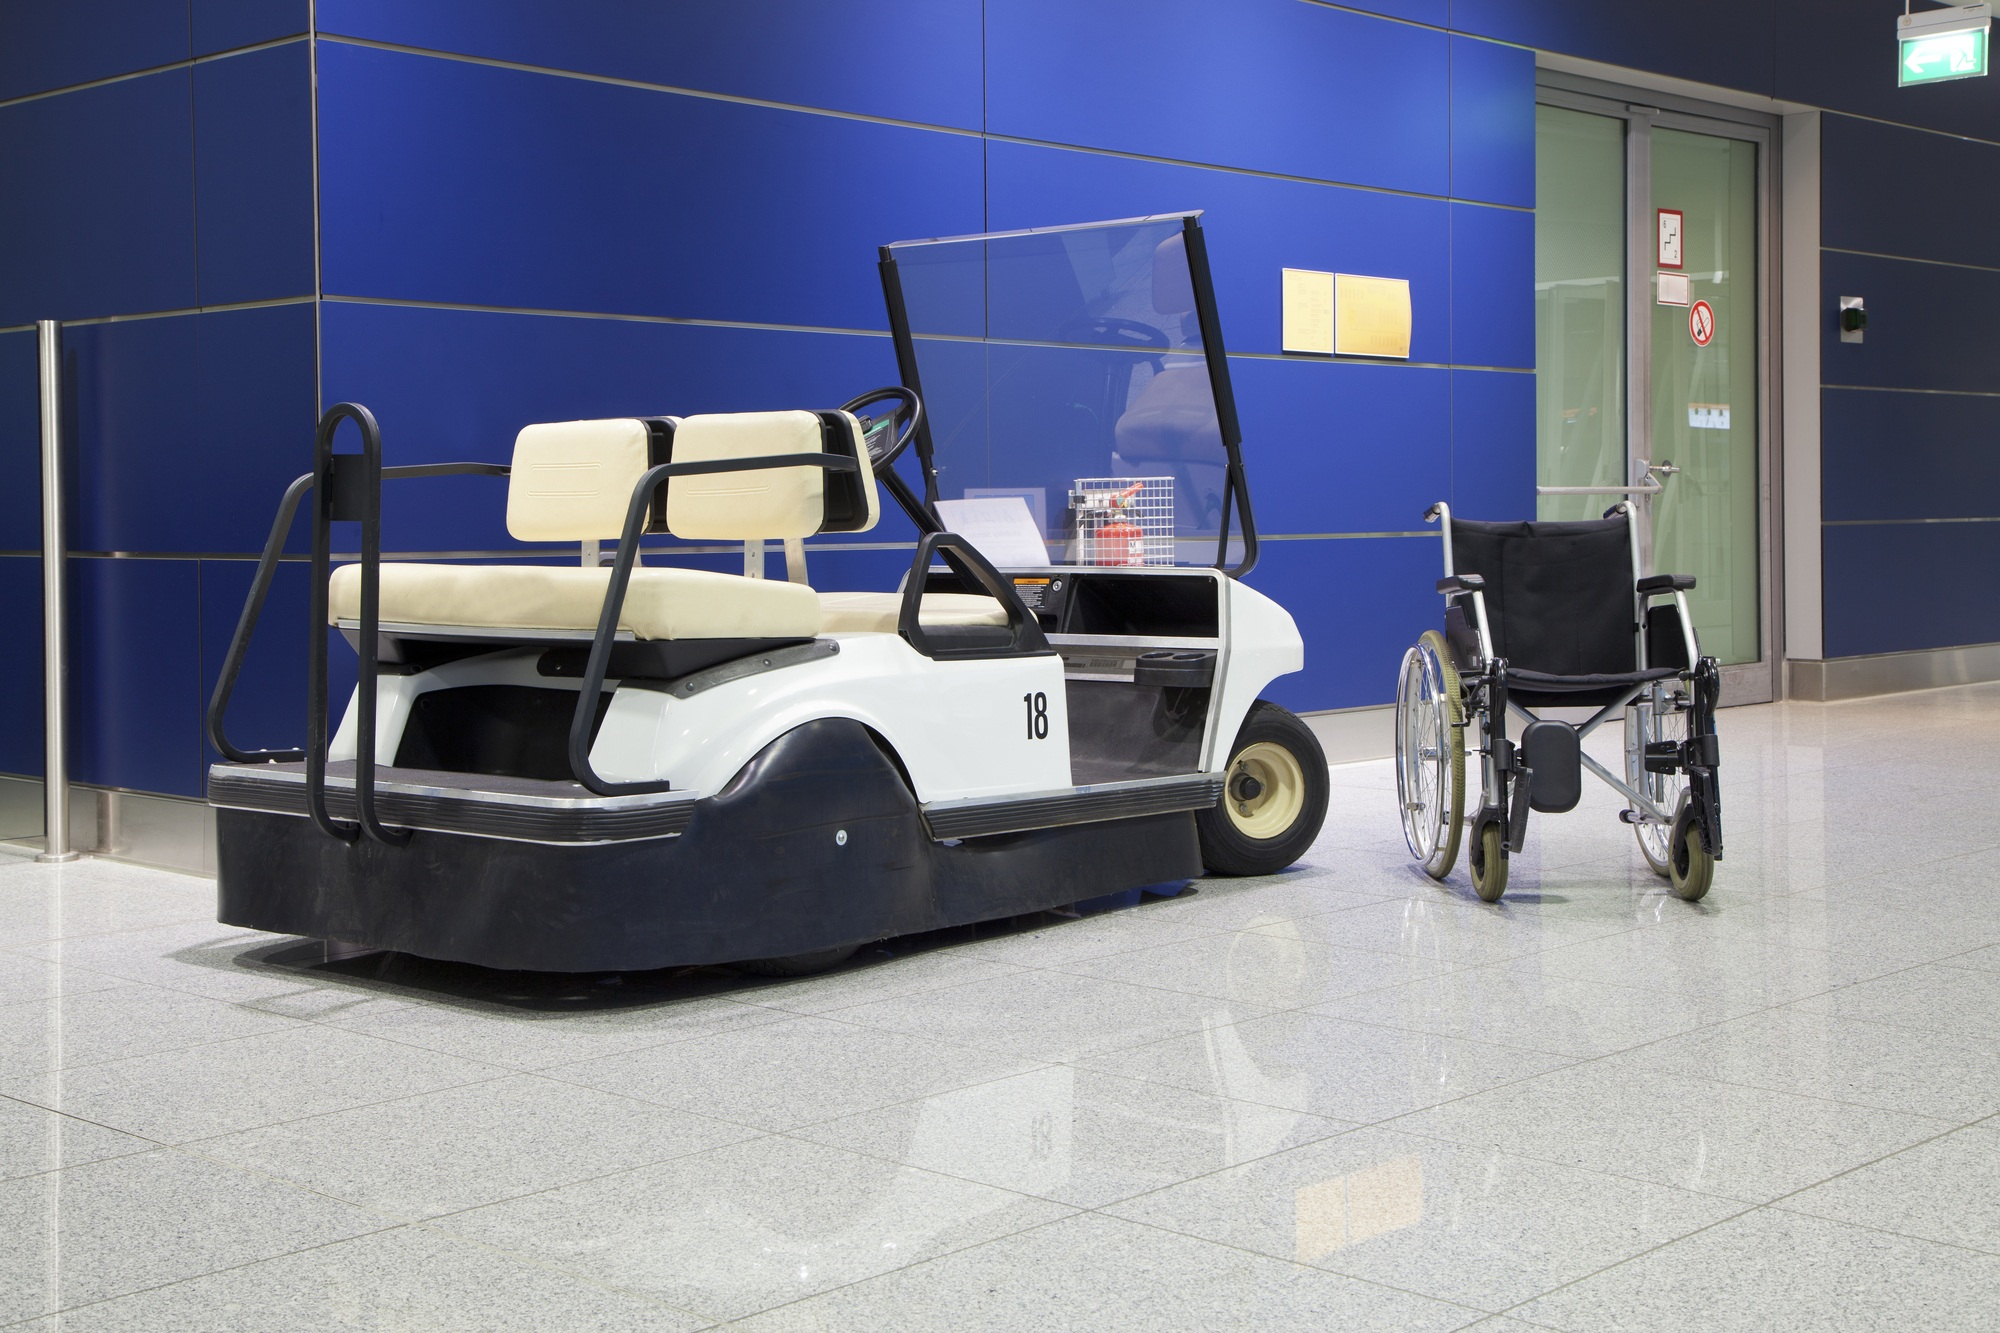 Make use of electric carts at the airport for ease...and fun!